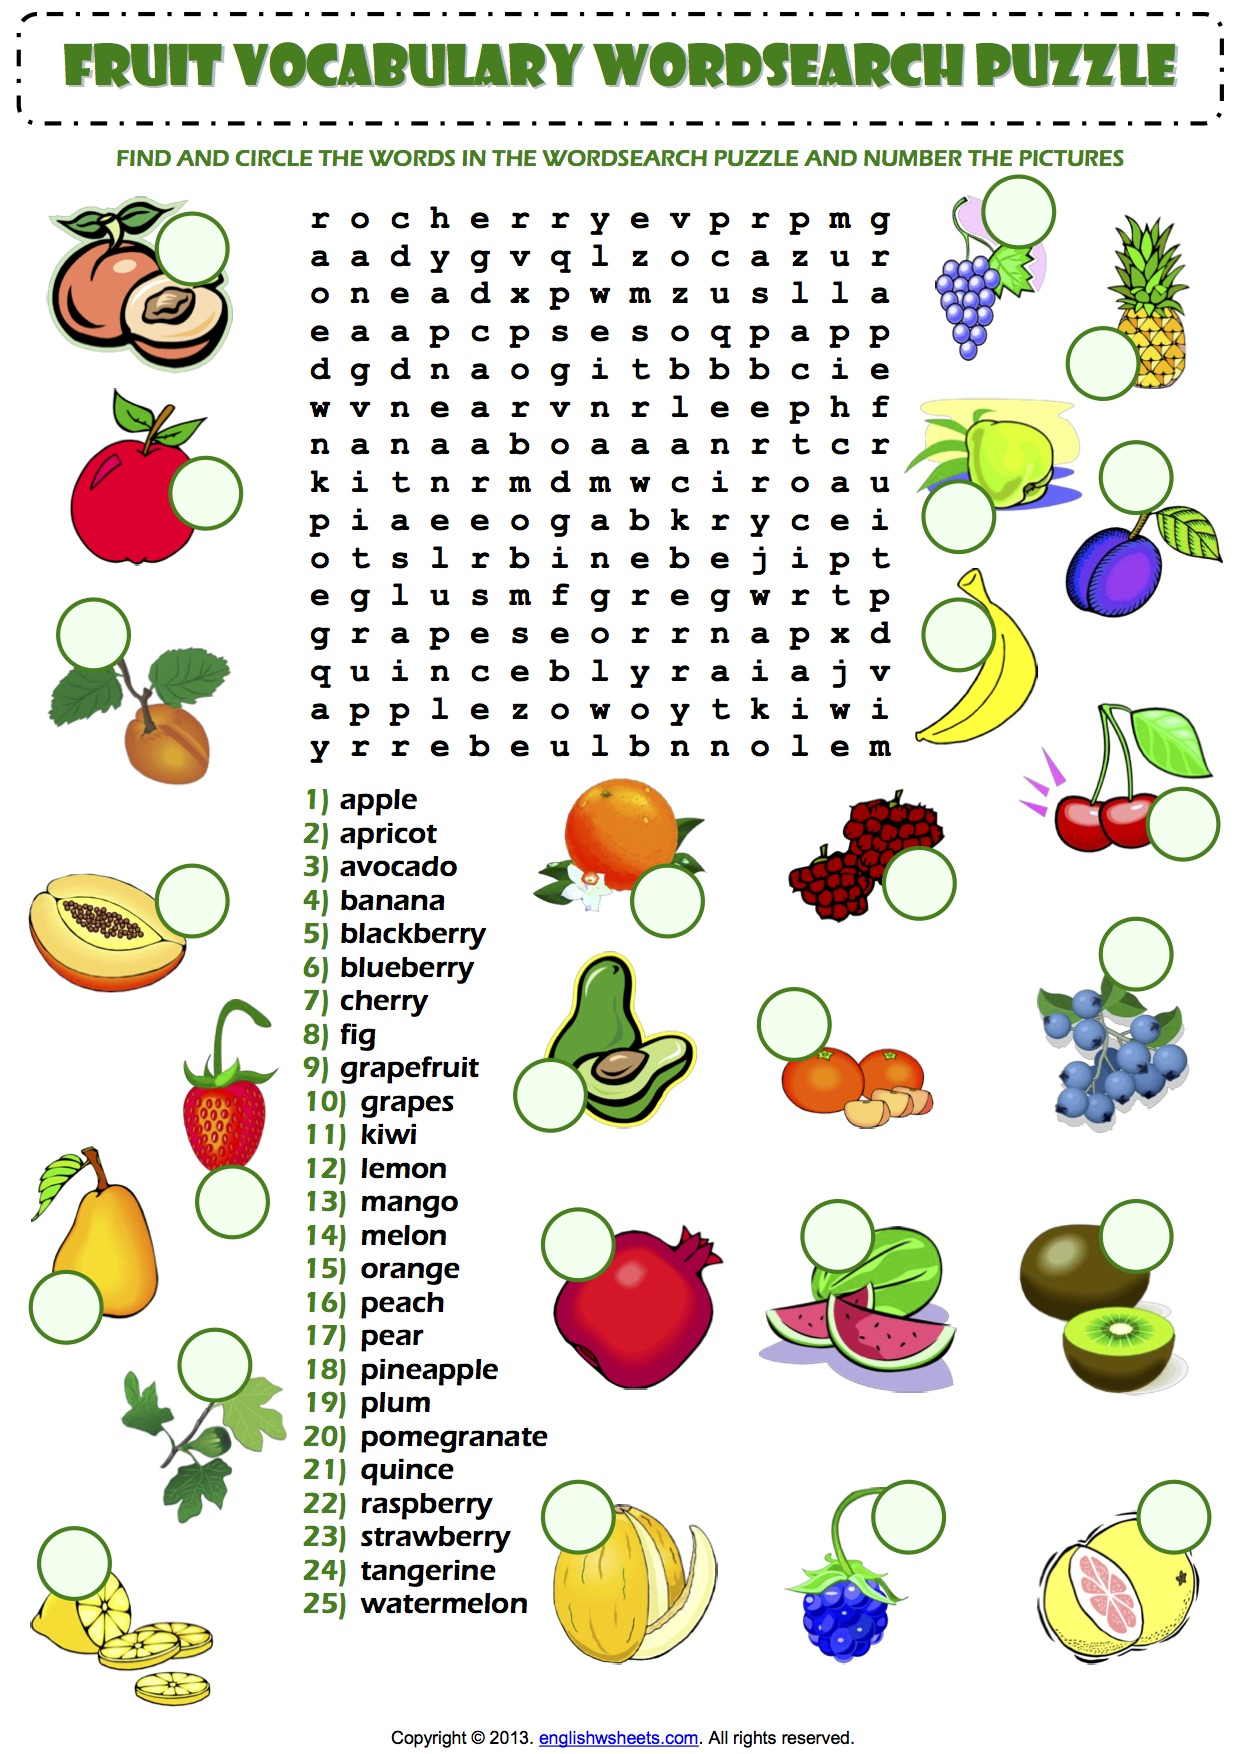 Fruit Vocabulary Wordsearch